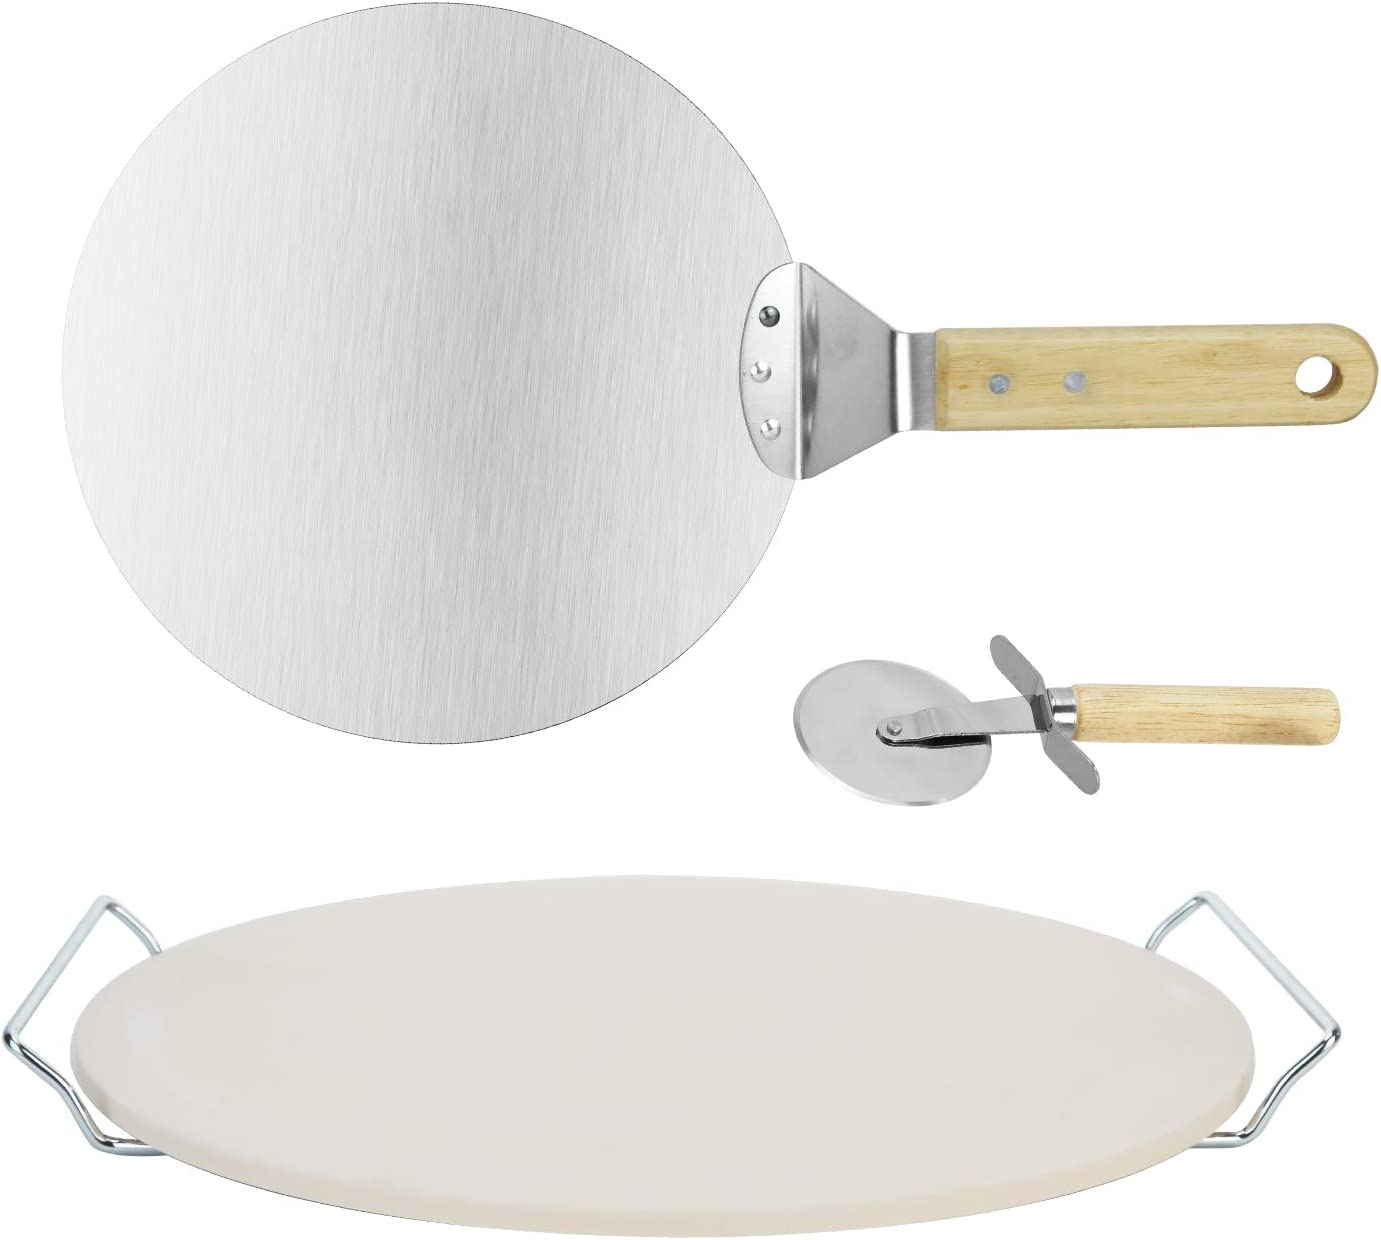 Ibnotuiy Round Pizza Stone Set, 13 Inch Cordierite Round Pizza Stone for Toaster Oven with 10 Inch Stainless Steel Pizza Peel, Pizza Cutter and Serving Rack Set of 4